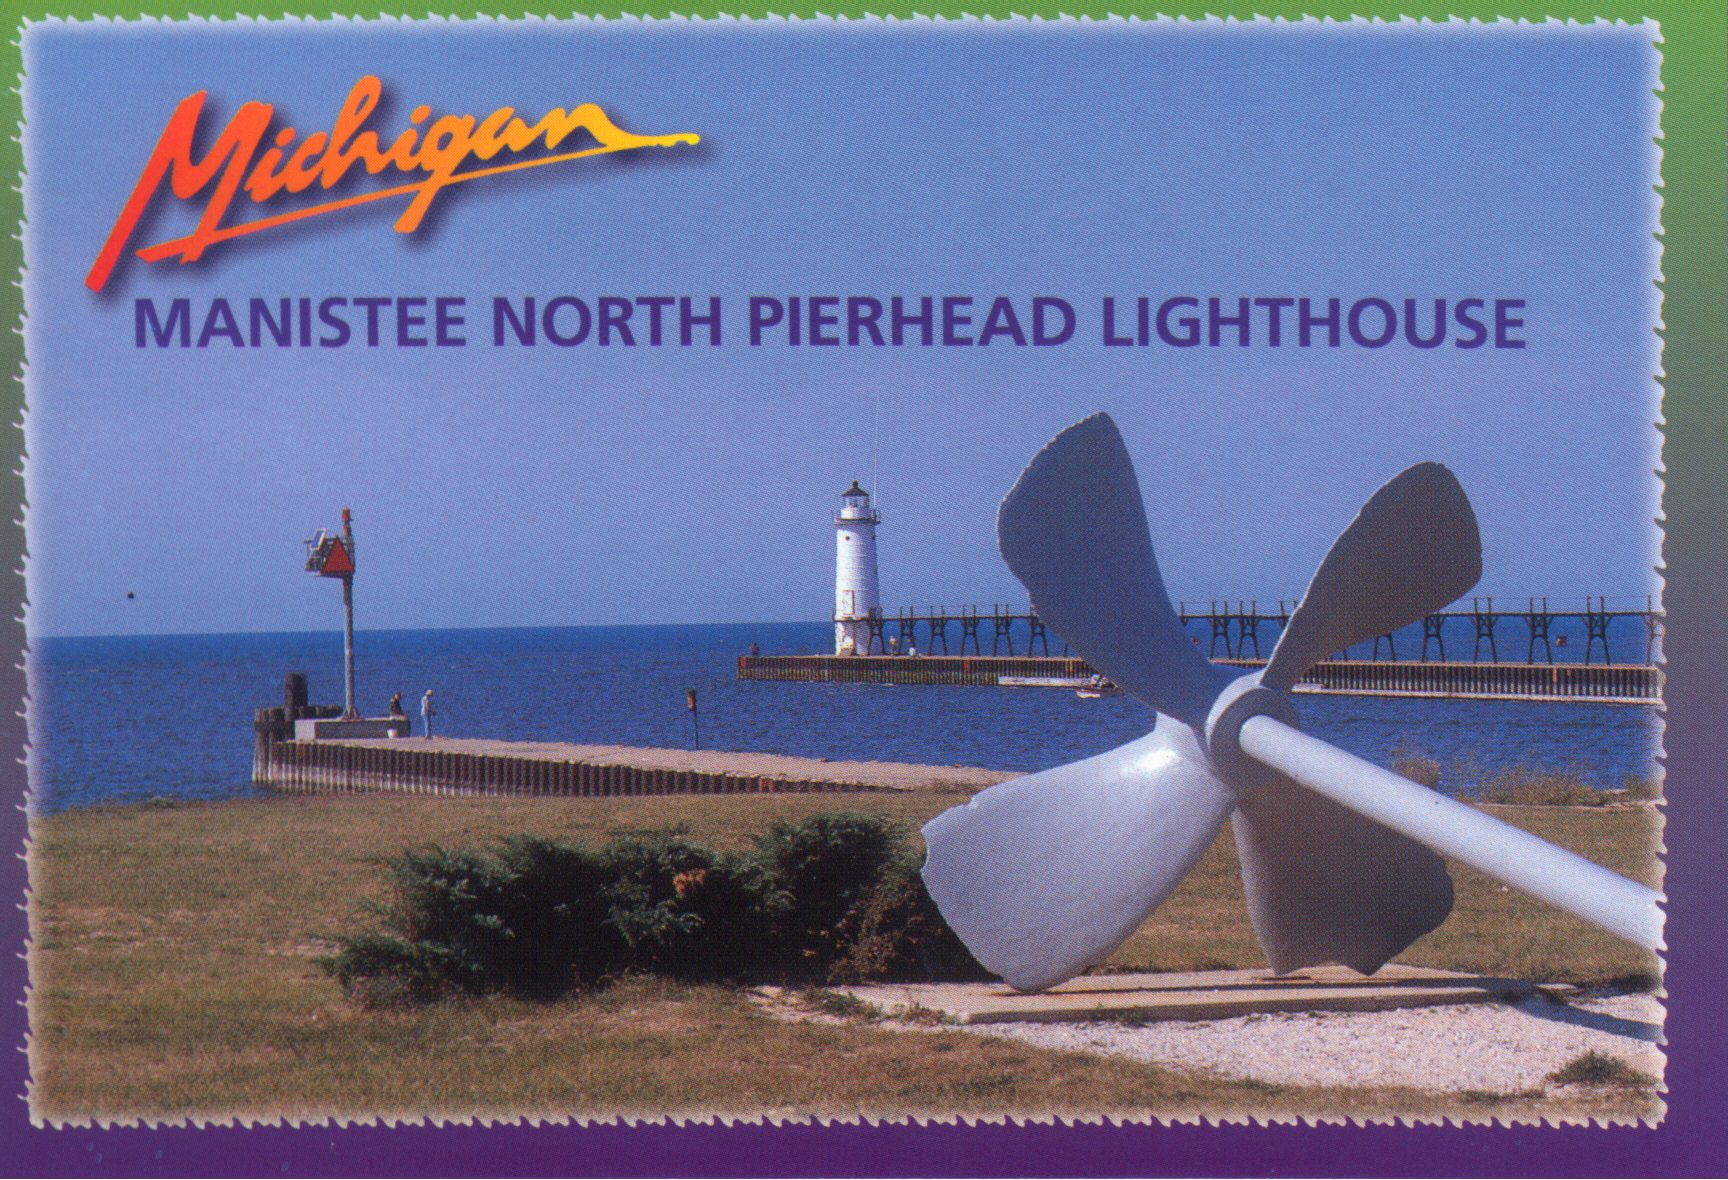 North Pierhead Lighthouse Postcard that shows the propeller and stub pier at First Street Beach in the foreground with the Harbor and the Fifth Avenue Lighthouse and Catwalk in the background